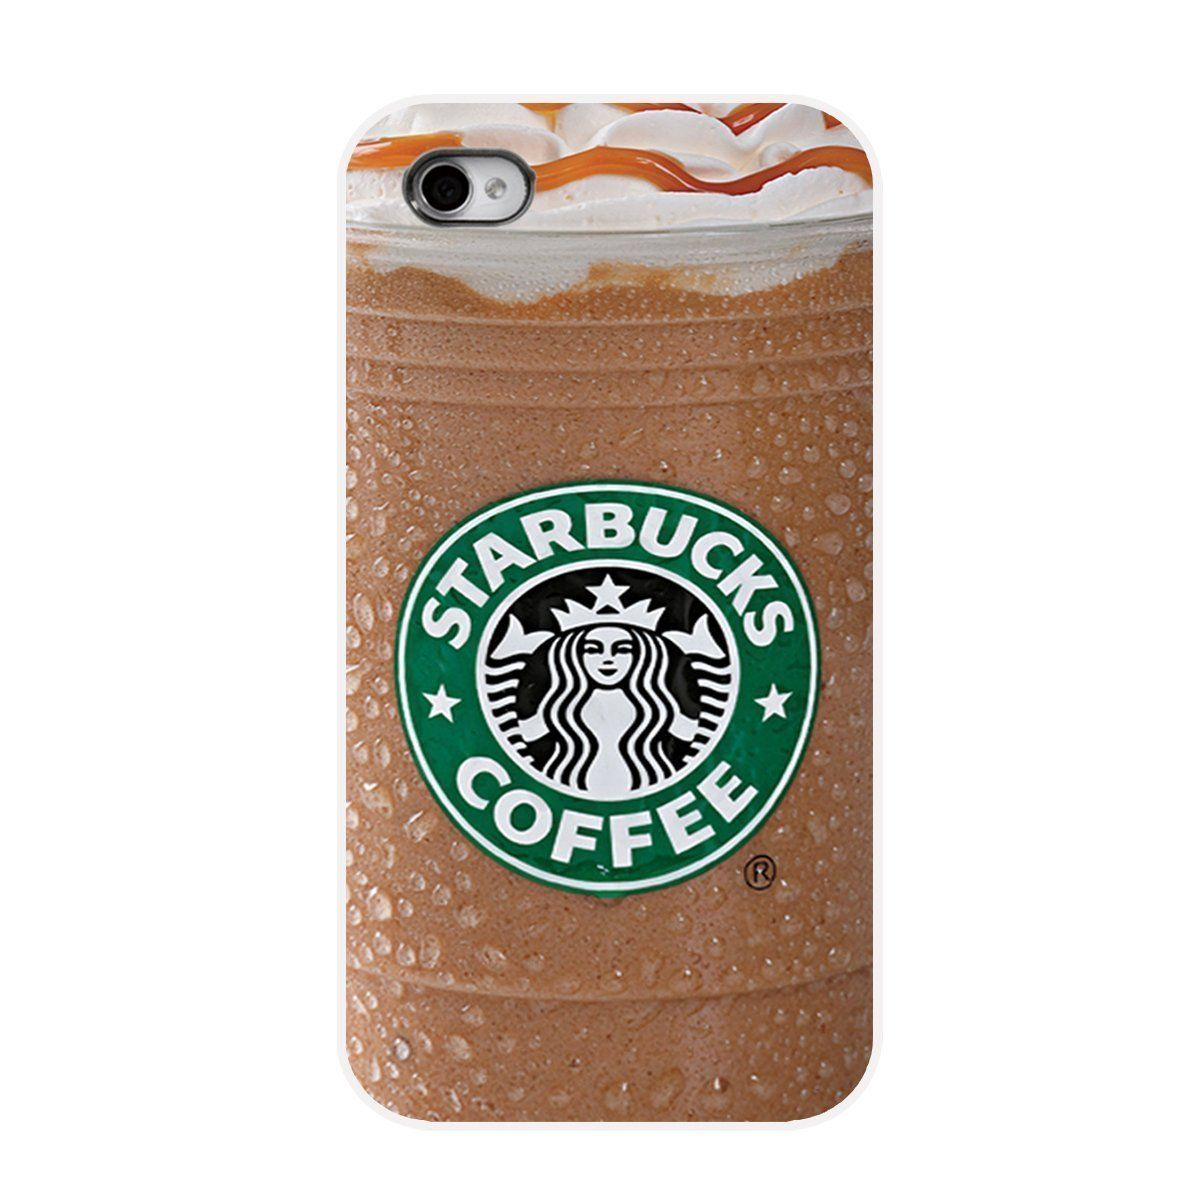 iphone 5s cases for teenage girls tumblr. iphone 7 cases for girls - google search 5s teenage tumblr a